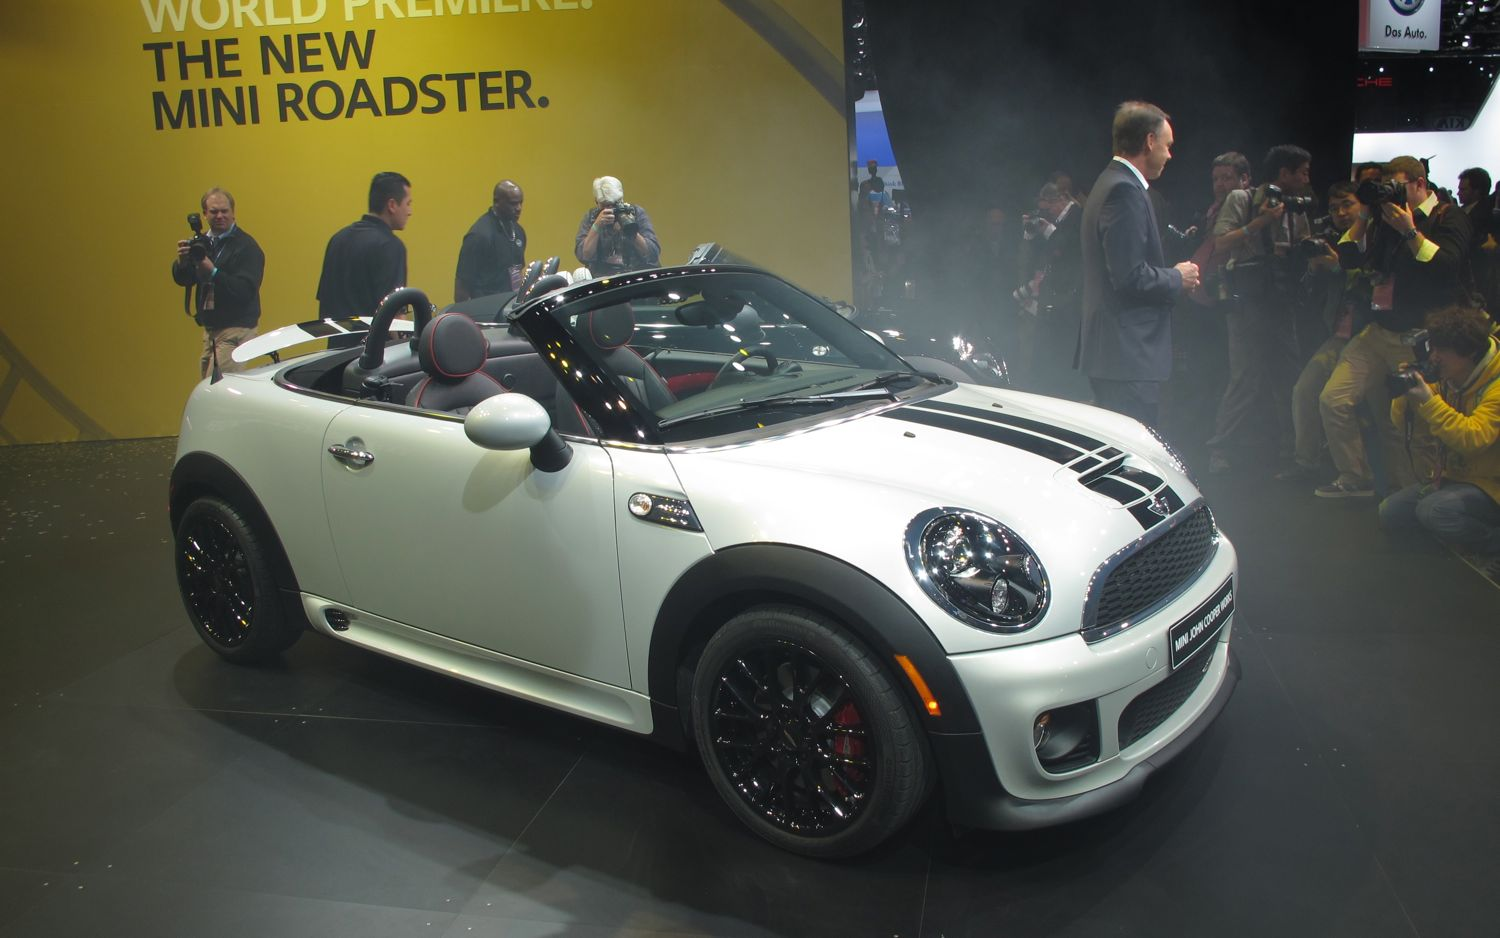 2012 Mini Roadster Front Three Quarter 211